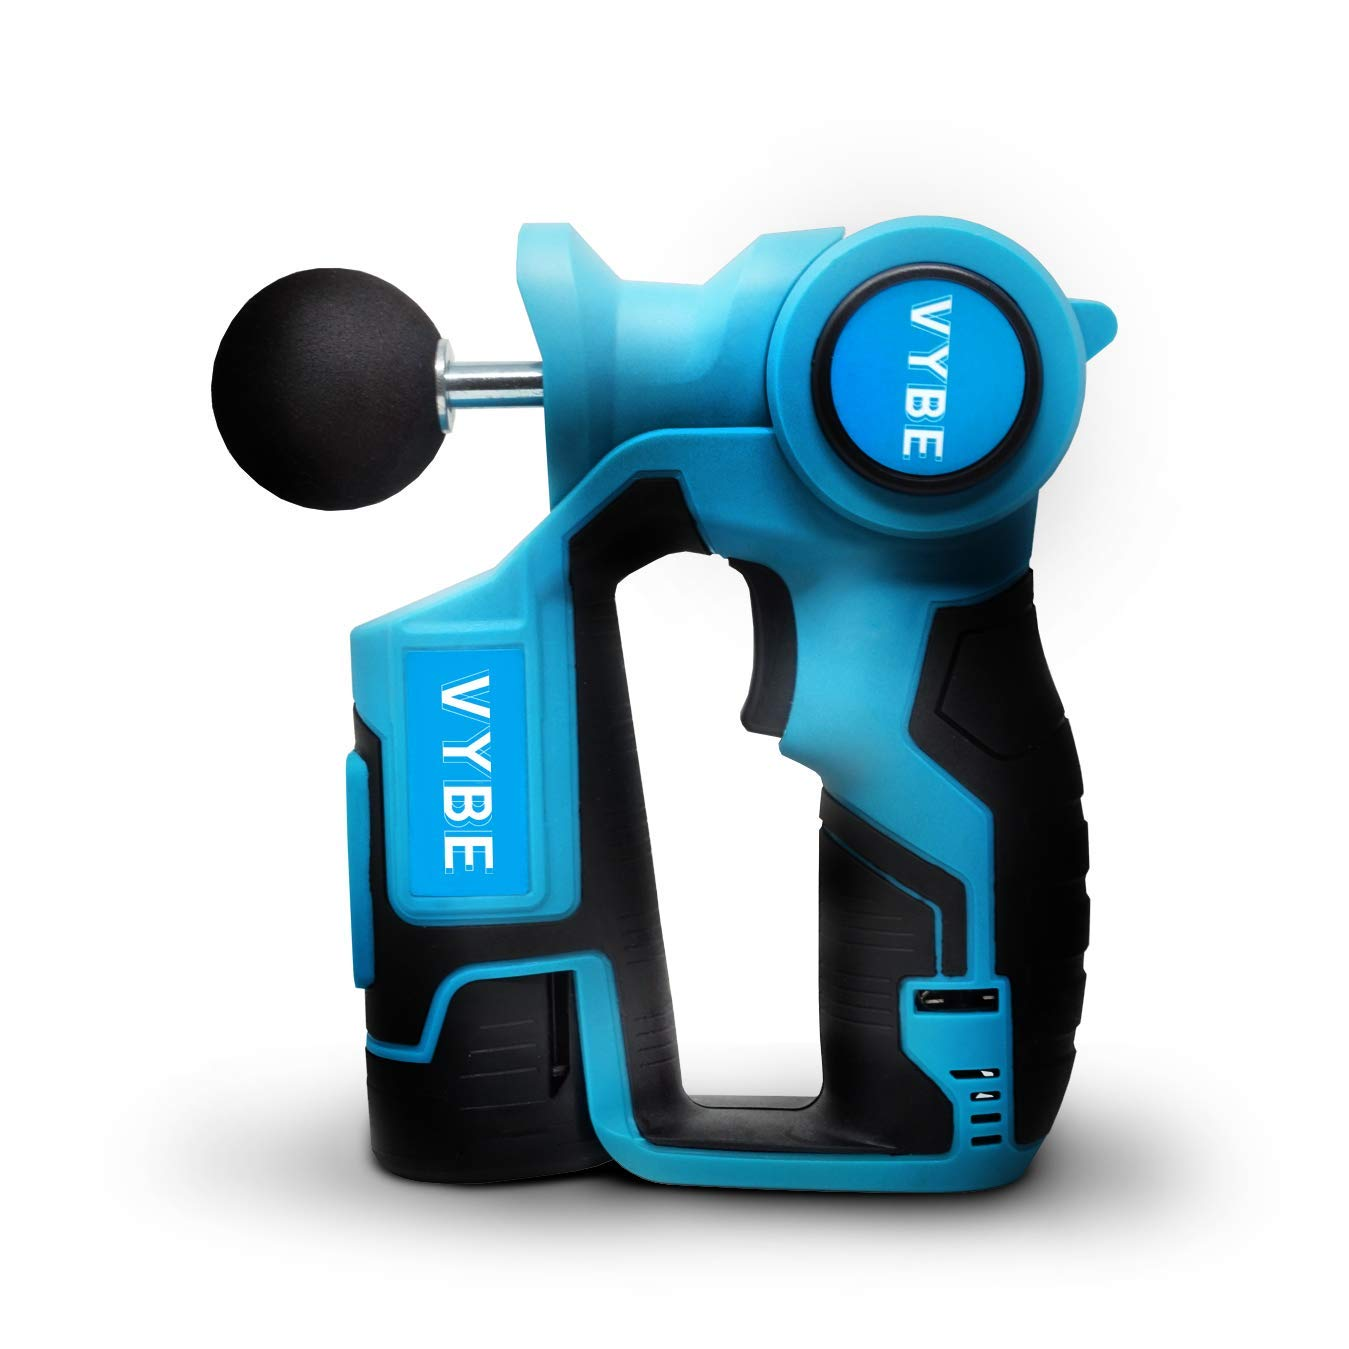 VYBE Percussion Massage Gun - V2 - 6 Speed Percussion Massager Guns w/ 3 Attachments for Deep Tissue Muscle Therapy - Electric, Handheld, Cordless, Adjustable Arm